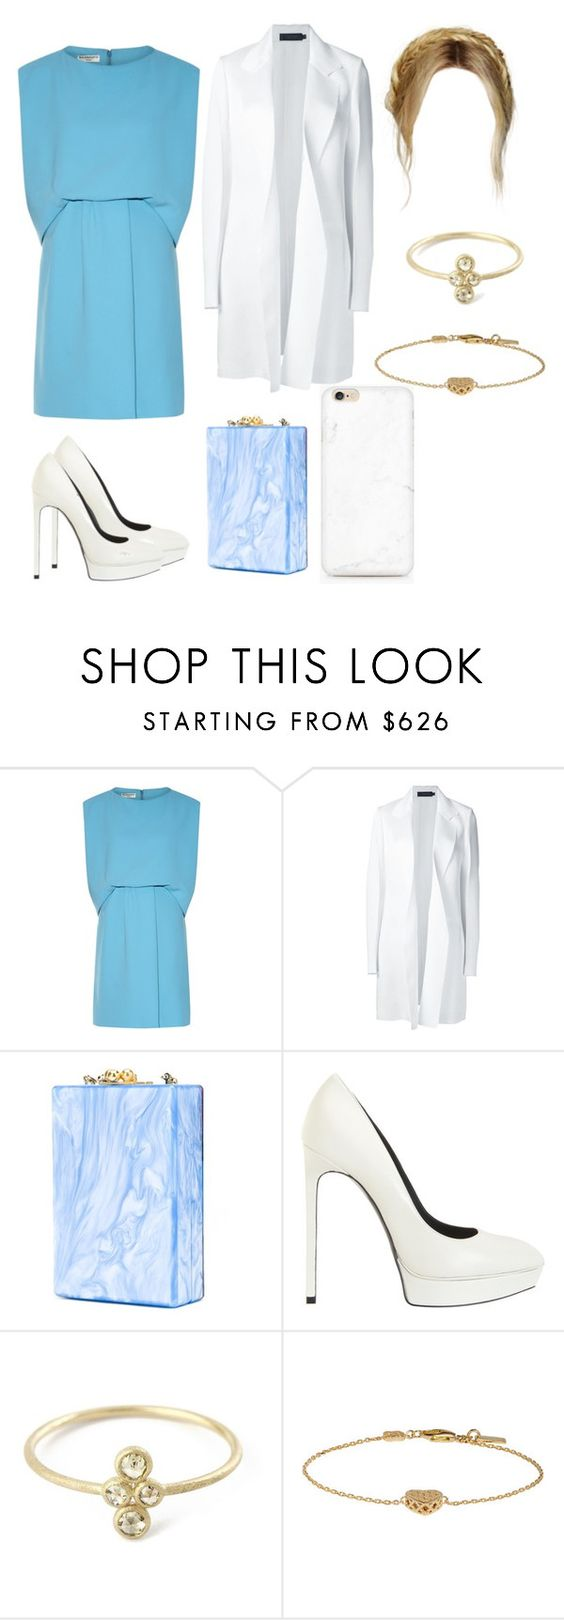 """""""Untitled #4420"""" by paula896 ❤ liked on Polyvore featuring Balenciaga, Calvin Klein Collection, Edie Parker, Yves Saint Laurent and Gucci"""